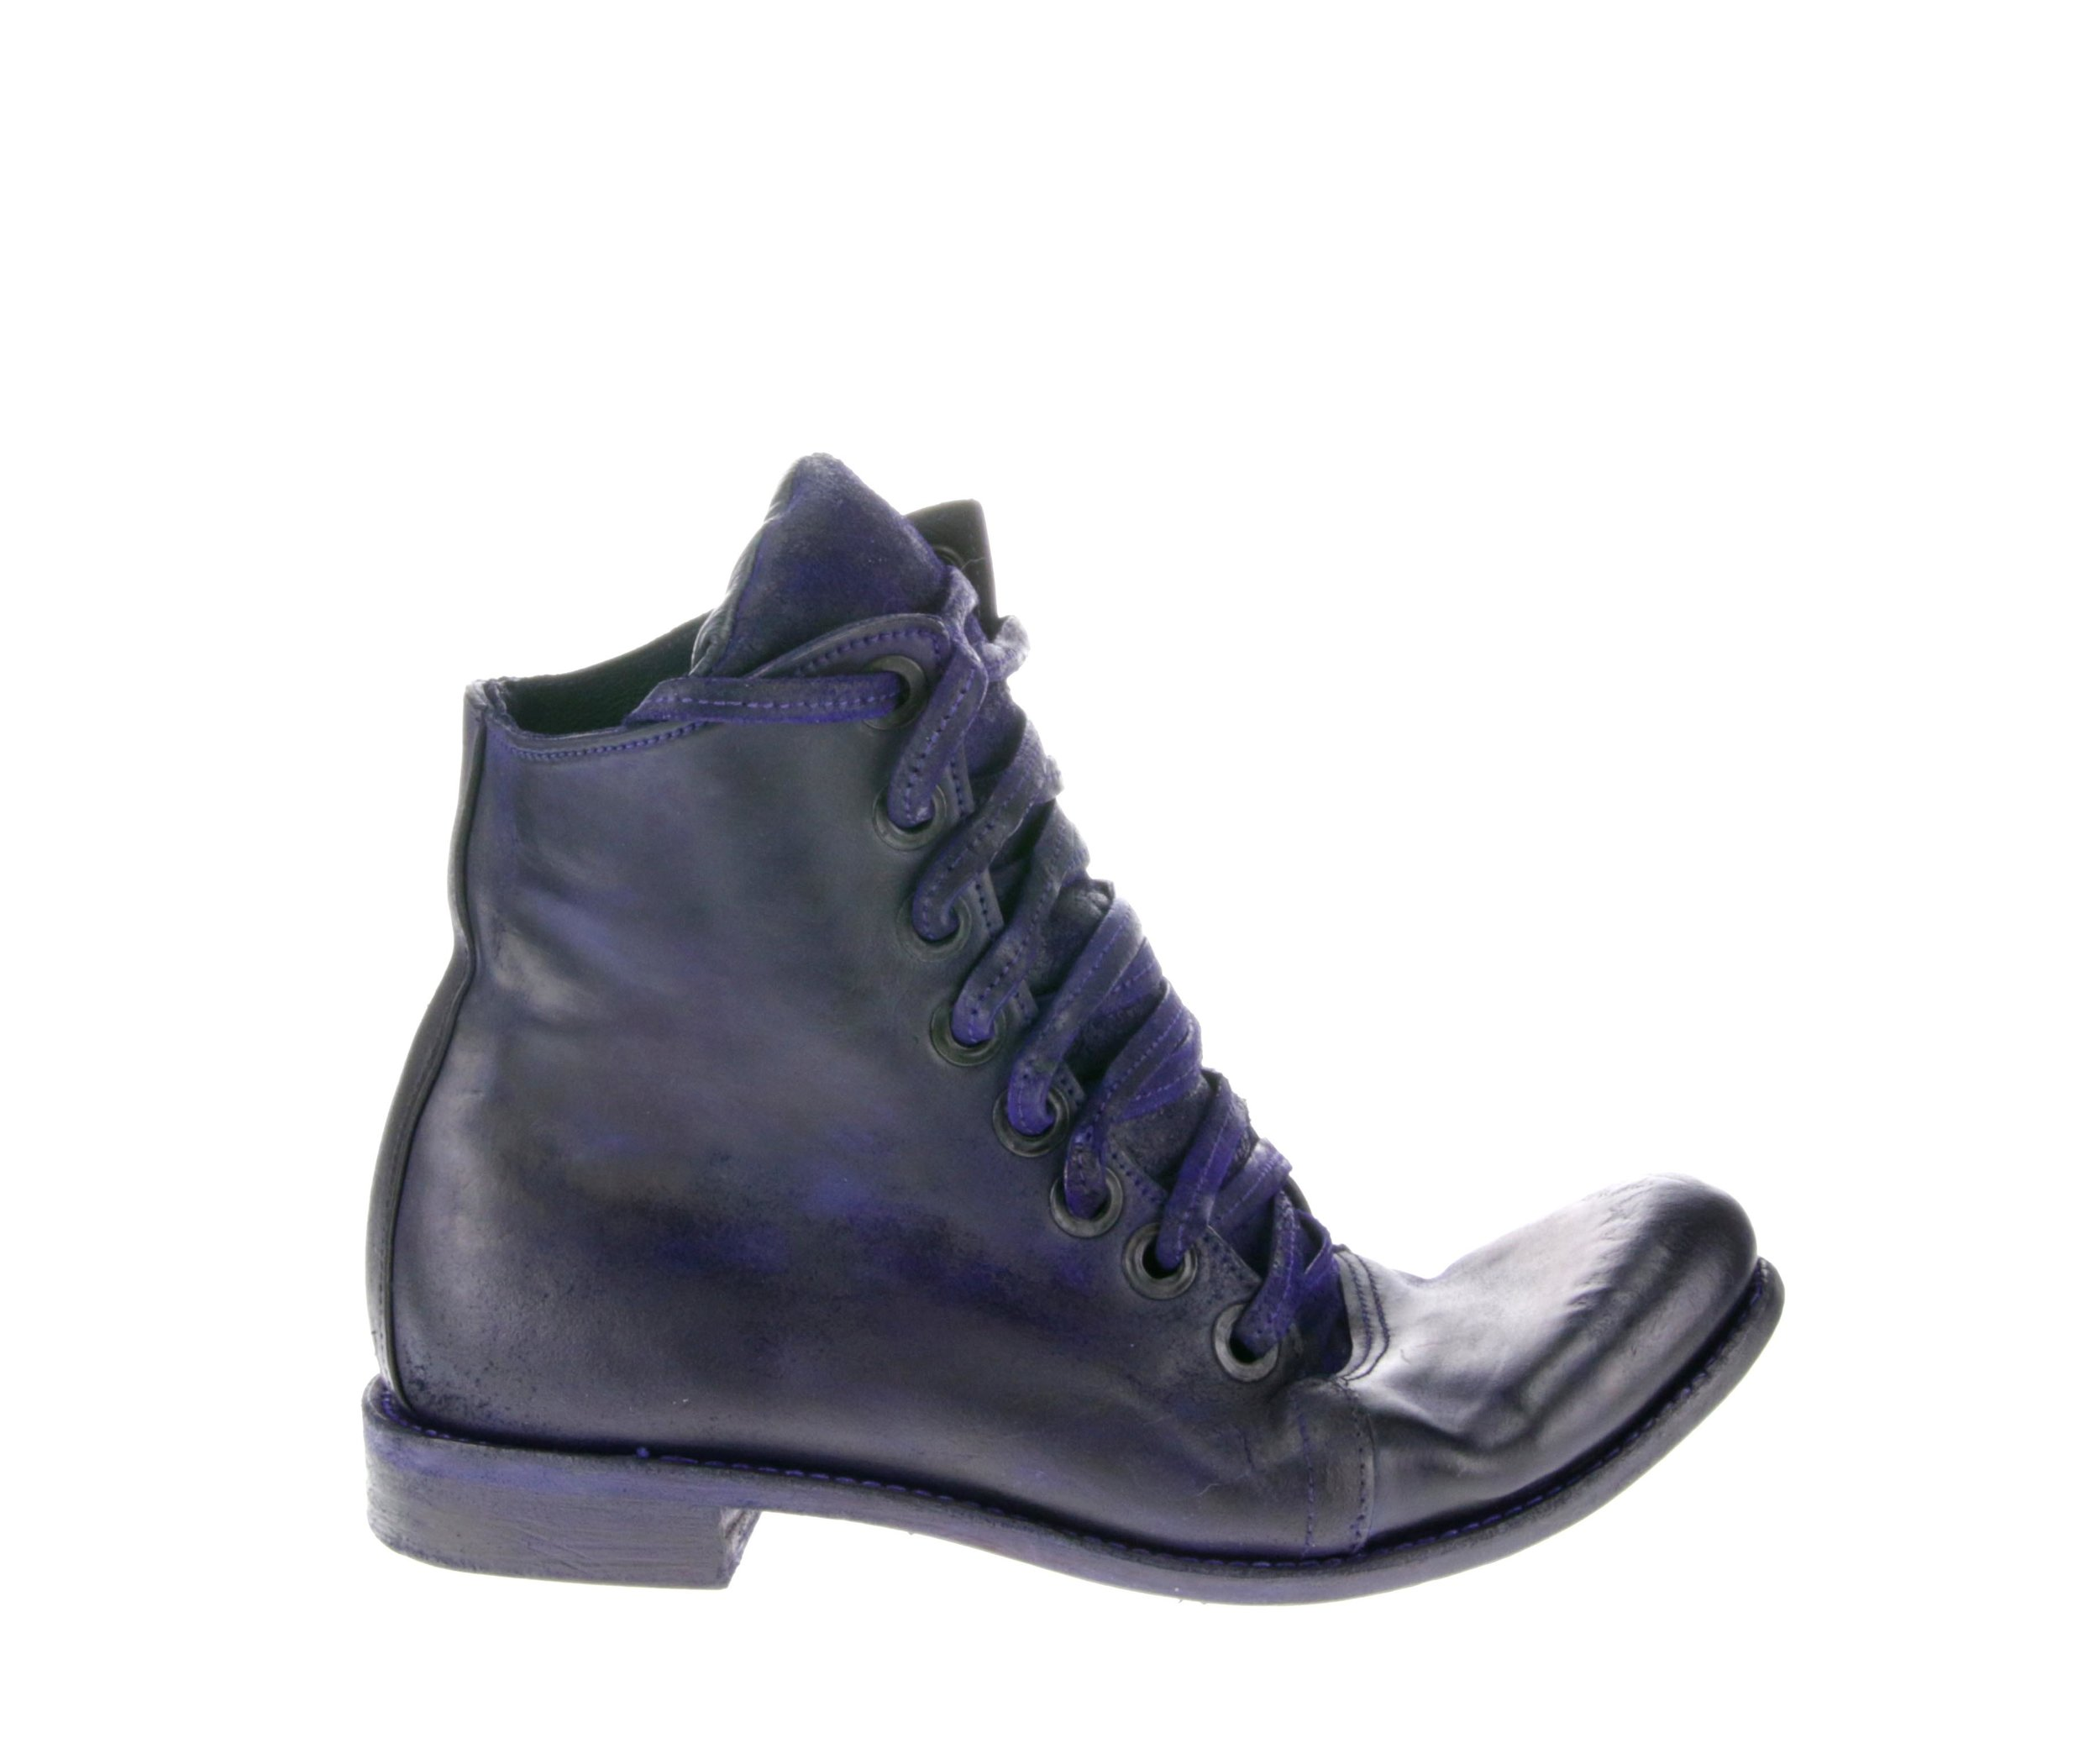 8Hole Work Boot Deep Purple